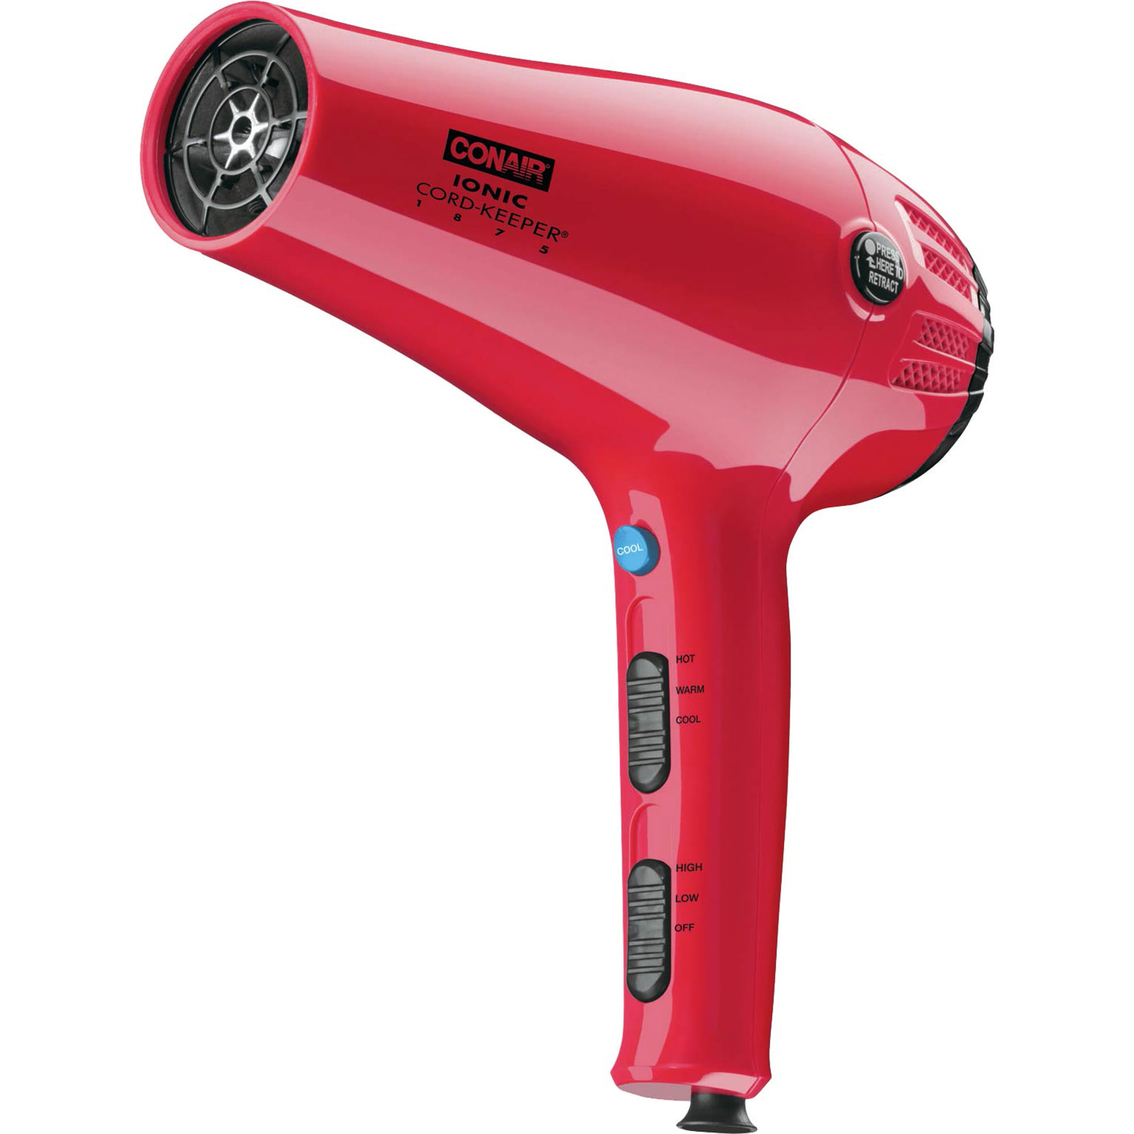 conair cord keeper styler hair dryers beauty health shop the exchange. Black Bedroom Furniture Sets. Home Design Ideas